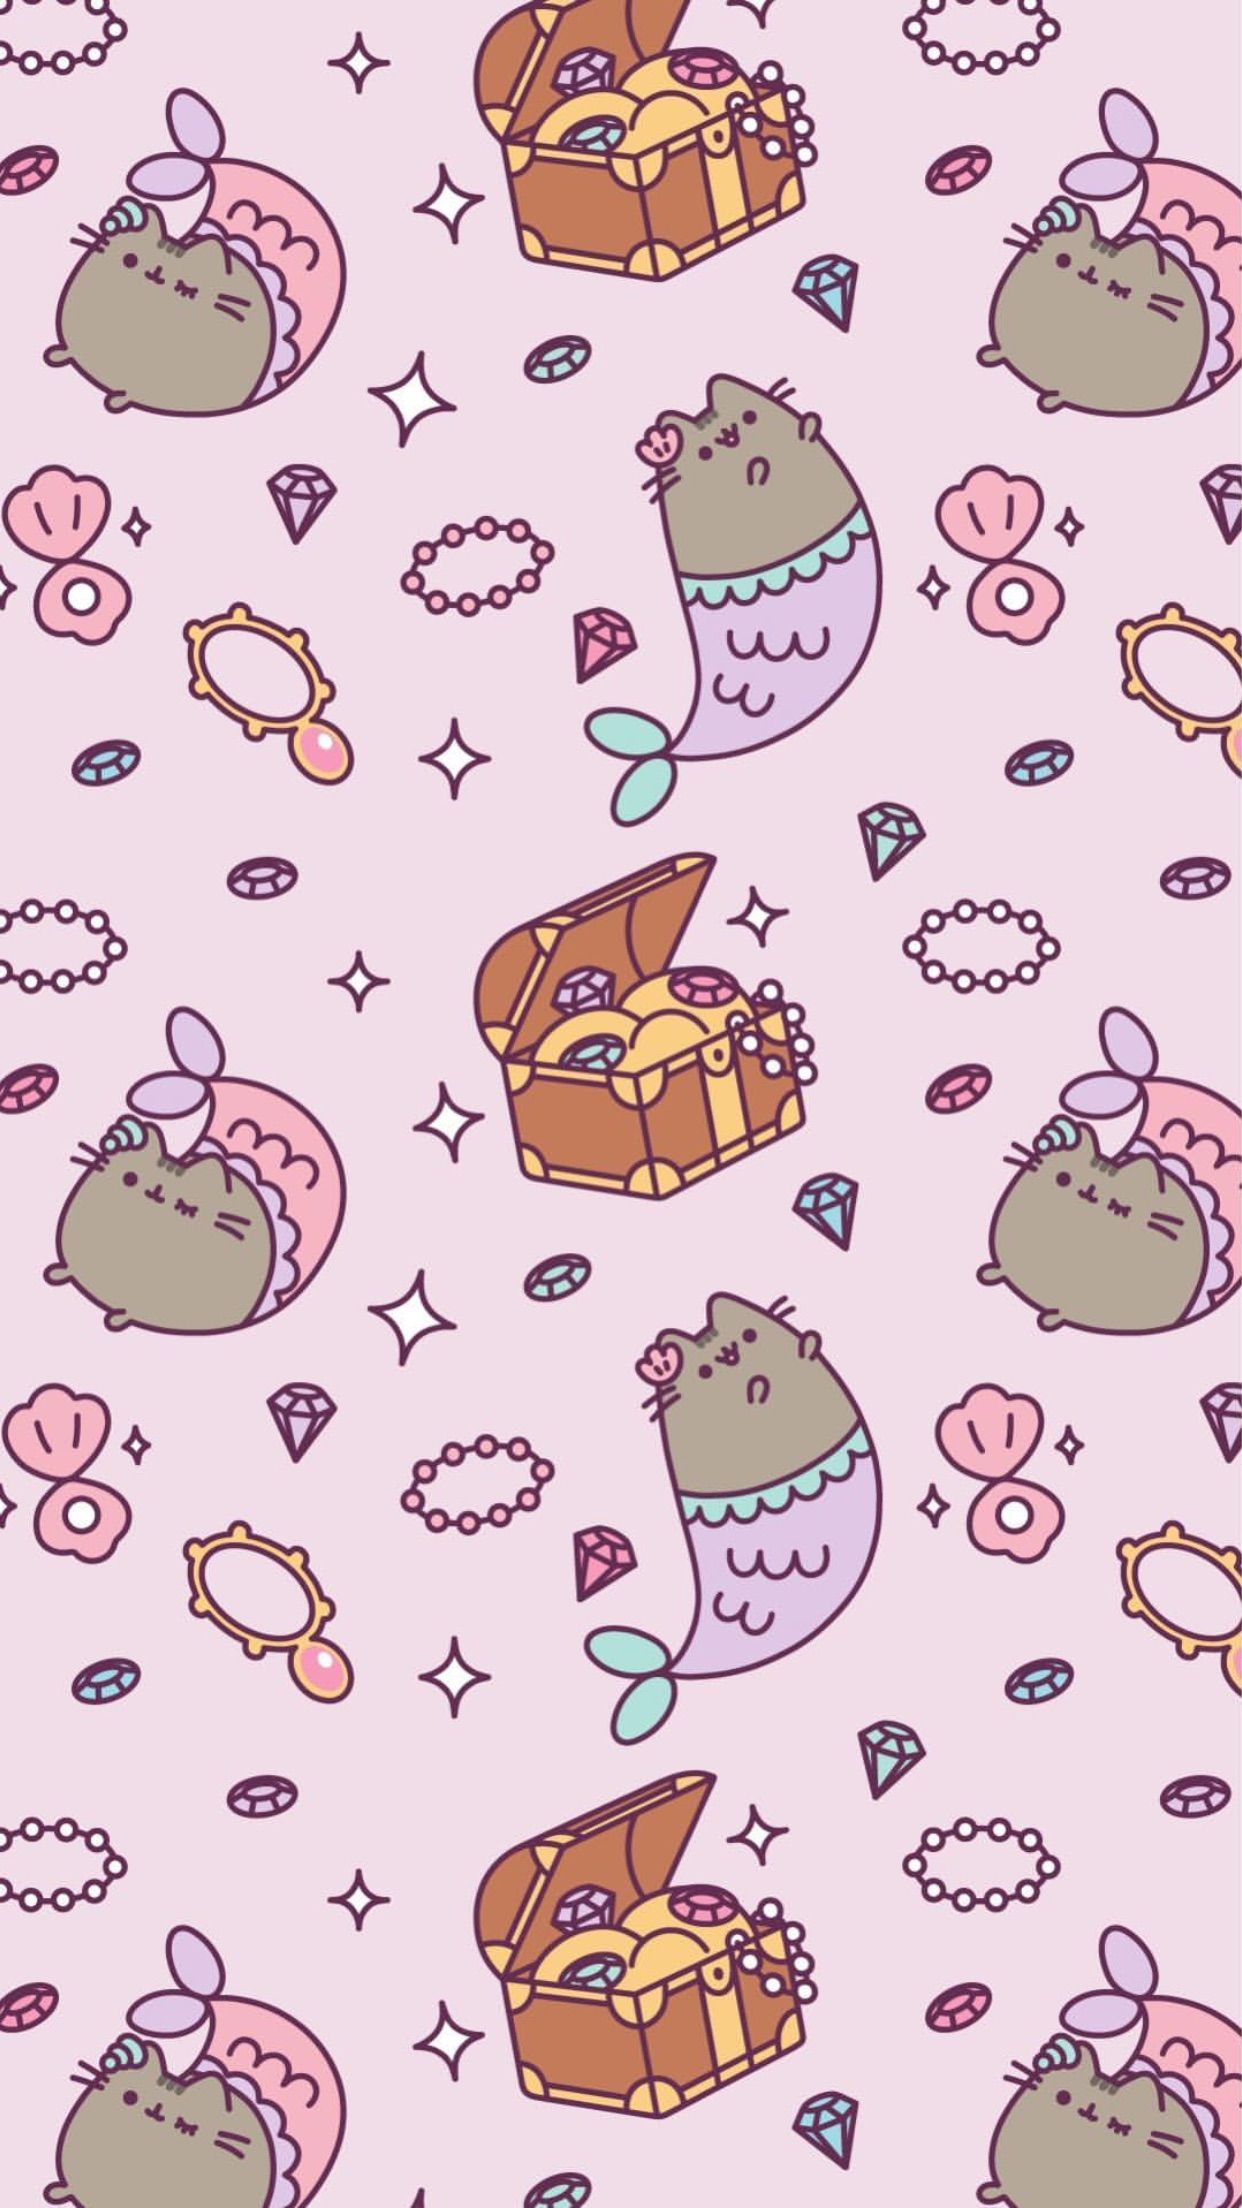 pusheen wallpaper mermaid kawaii wallpapers in 2018